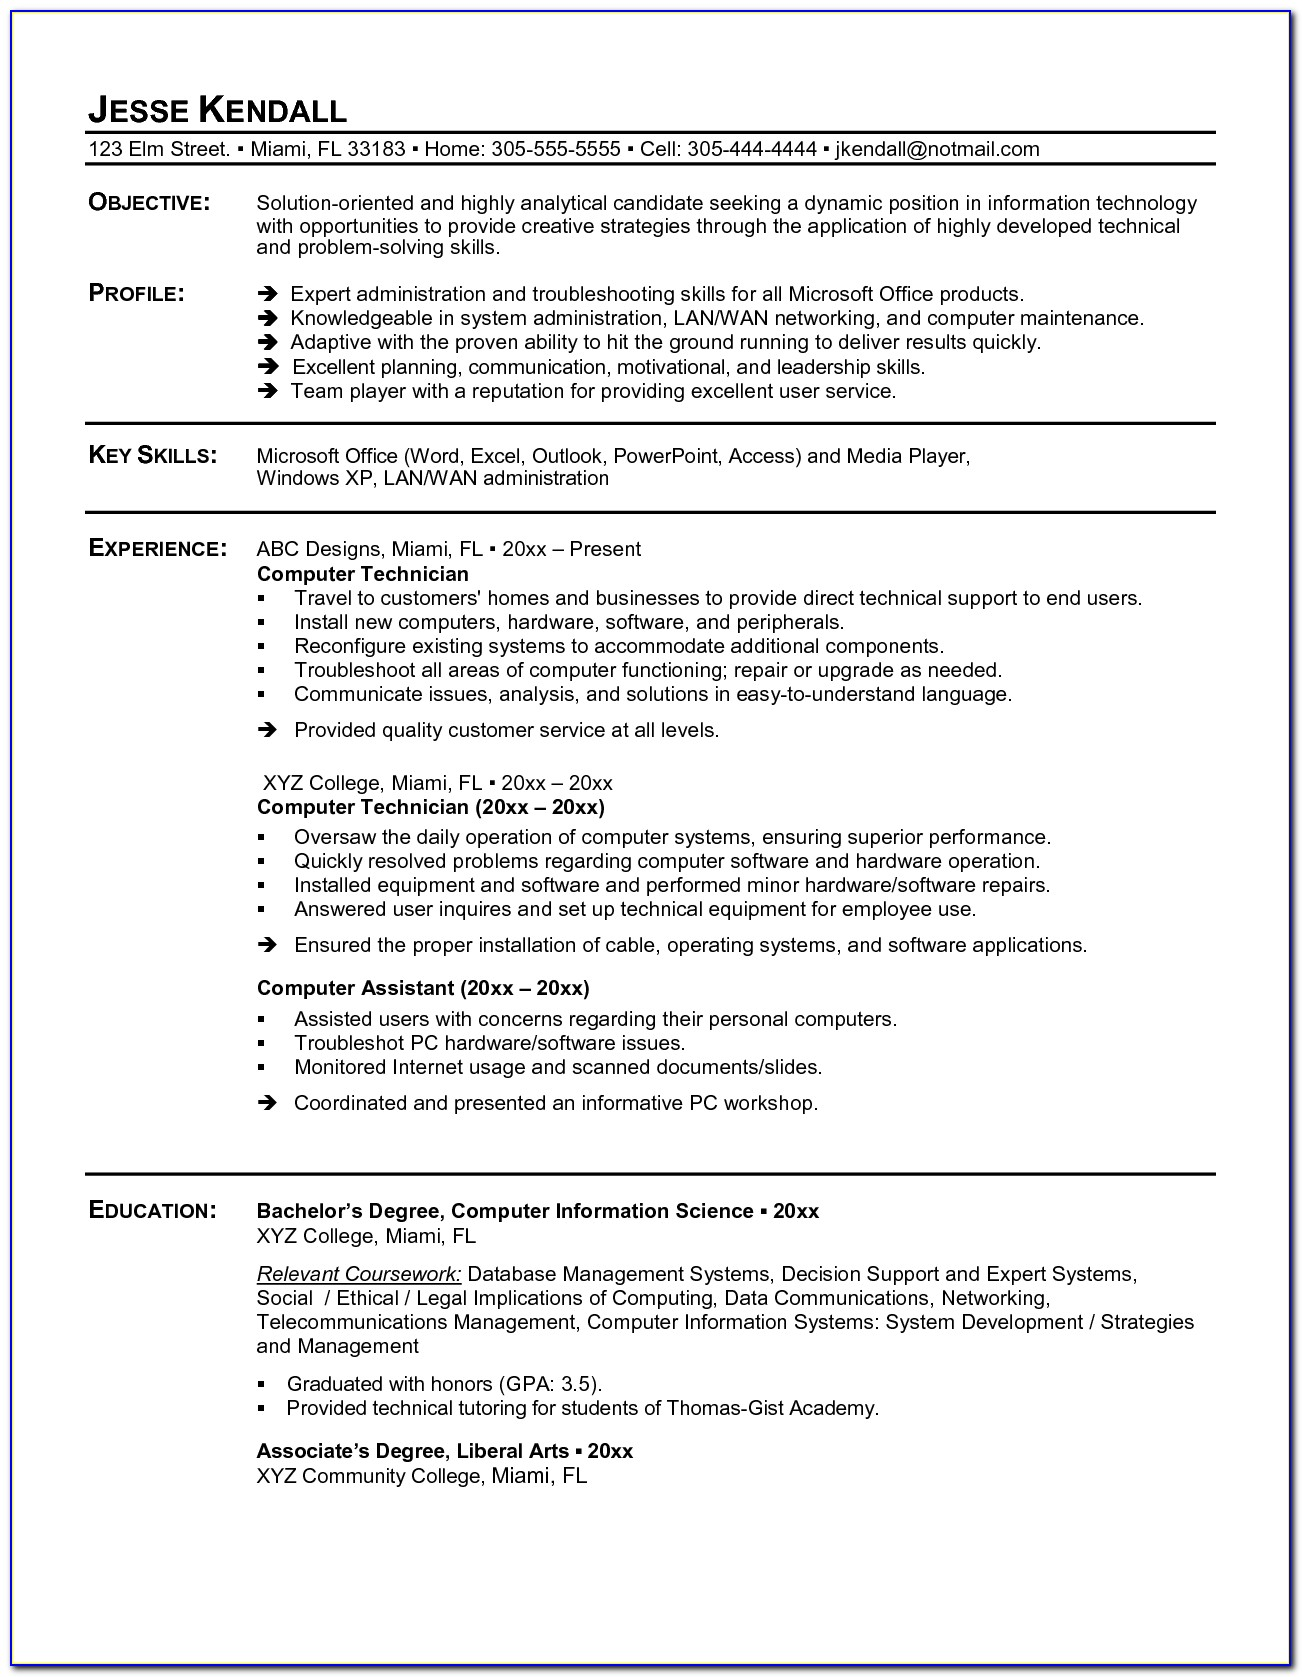 Sample Resume Of Computer Technician